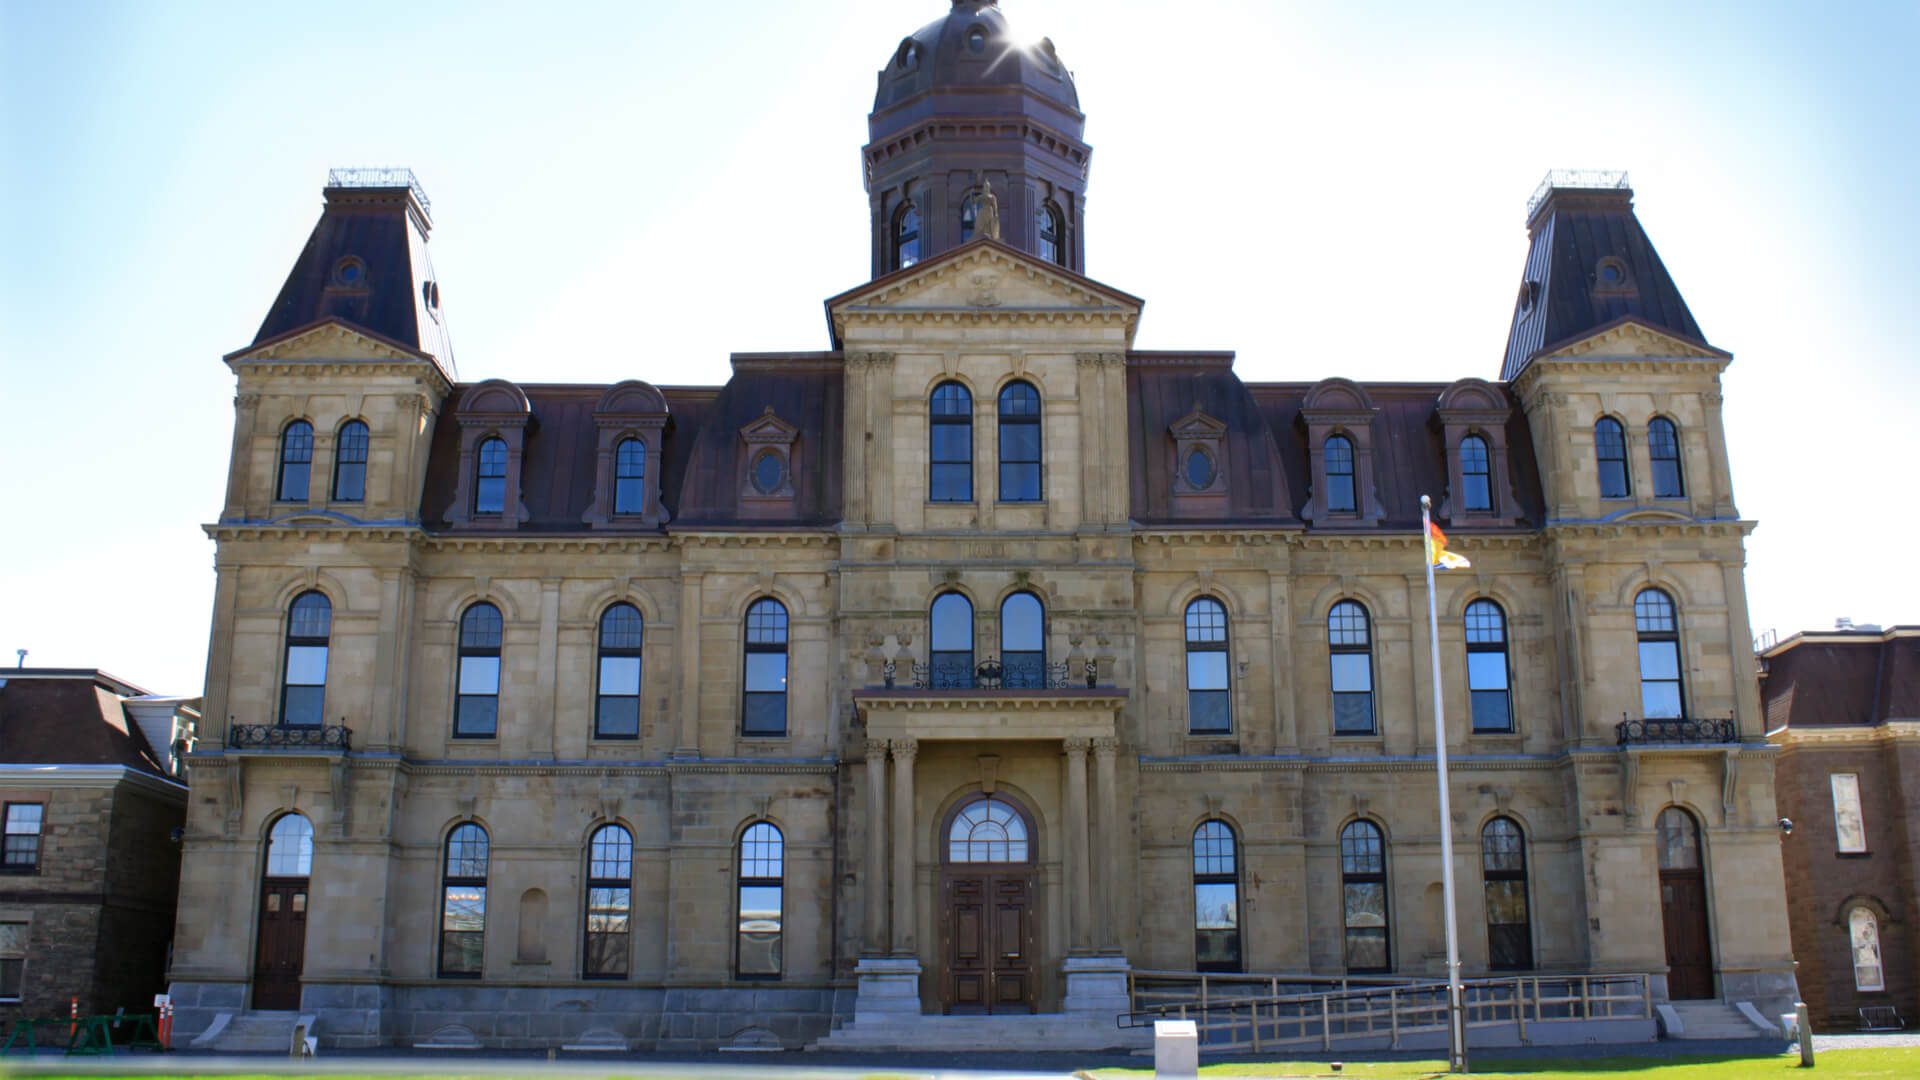 Legislative Assembly Building in Fredericton on a sunny day